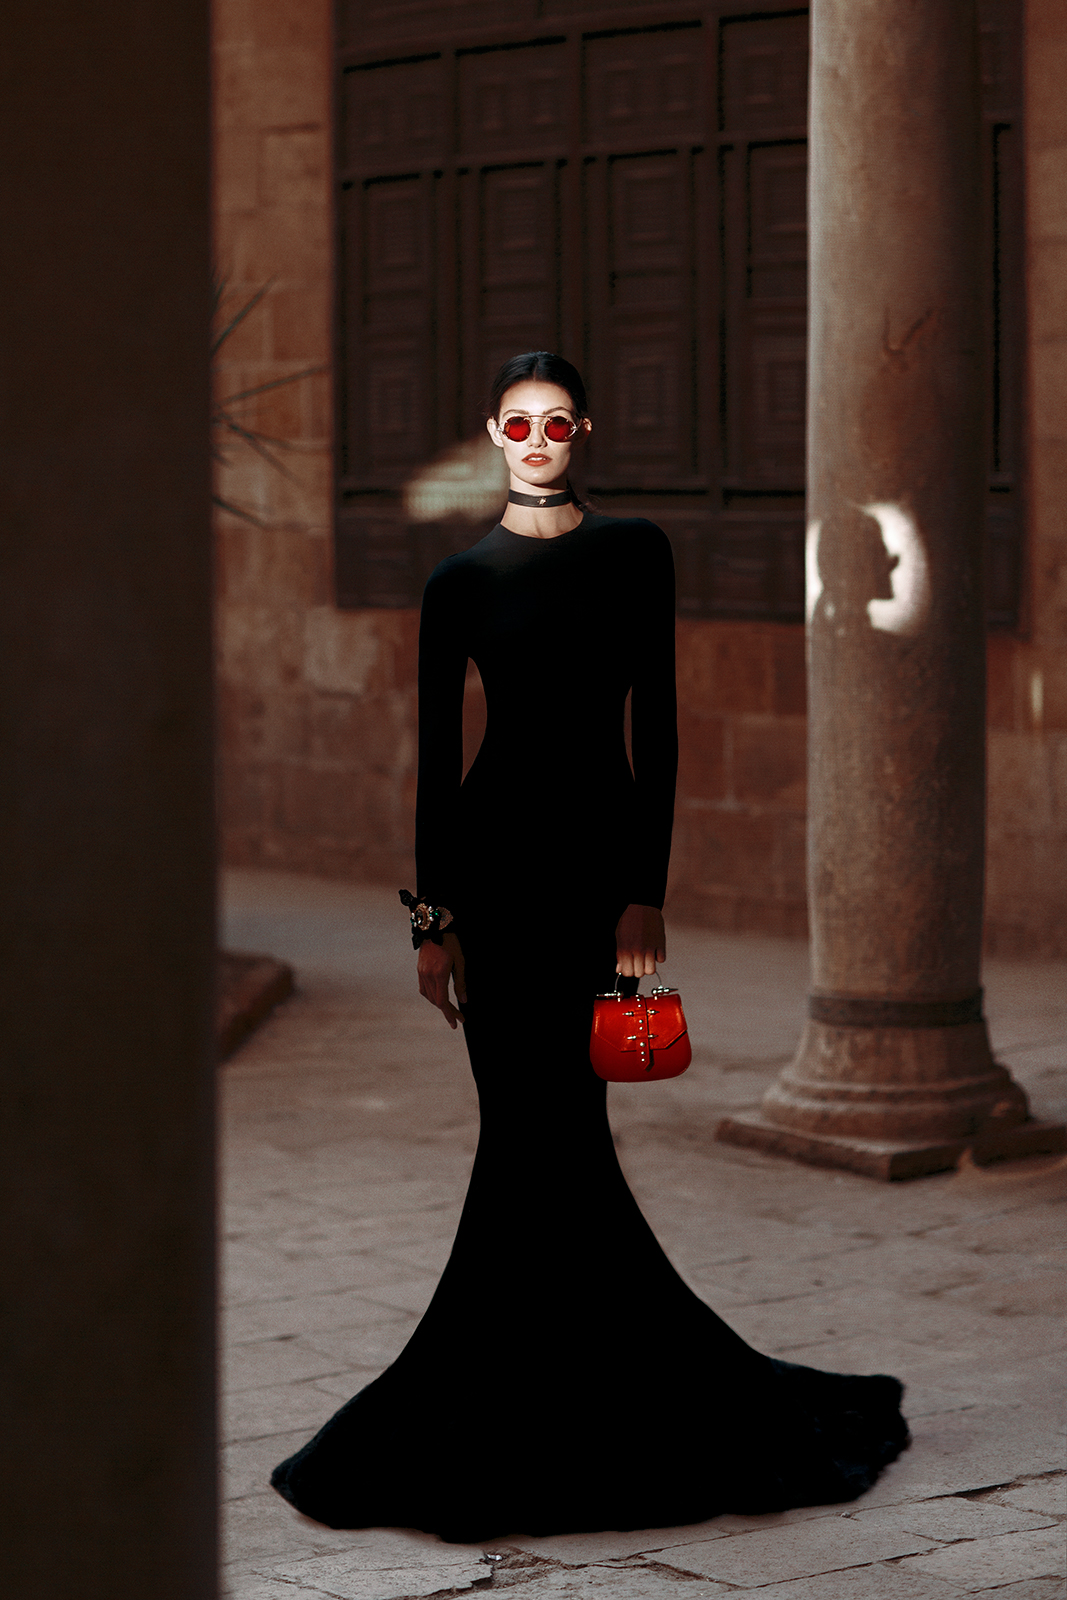 Published in Vogue Arabia Model: Tara Emad Styling: Lorand Lajos Bag: Okhtein Gown : Kojak Studio Couture Sunglasses : Amr Saad Chocker : Okhtein X House of Select Cuff : Vantique Production: Maison Pyramide Photography and Art Direction: Bassam Allam Location: Beit Al Suhaimy, Cairo, Egypt